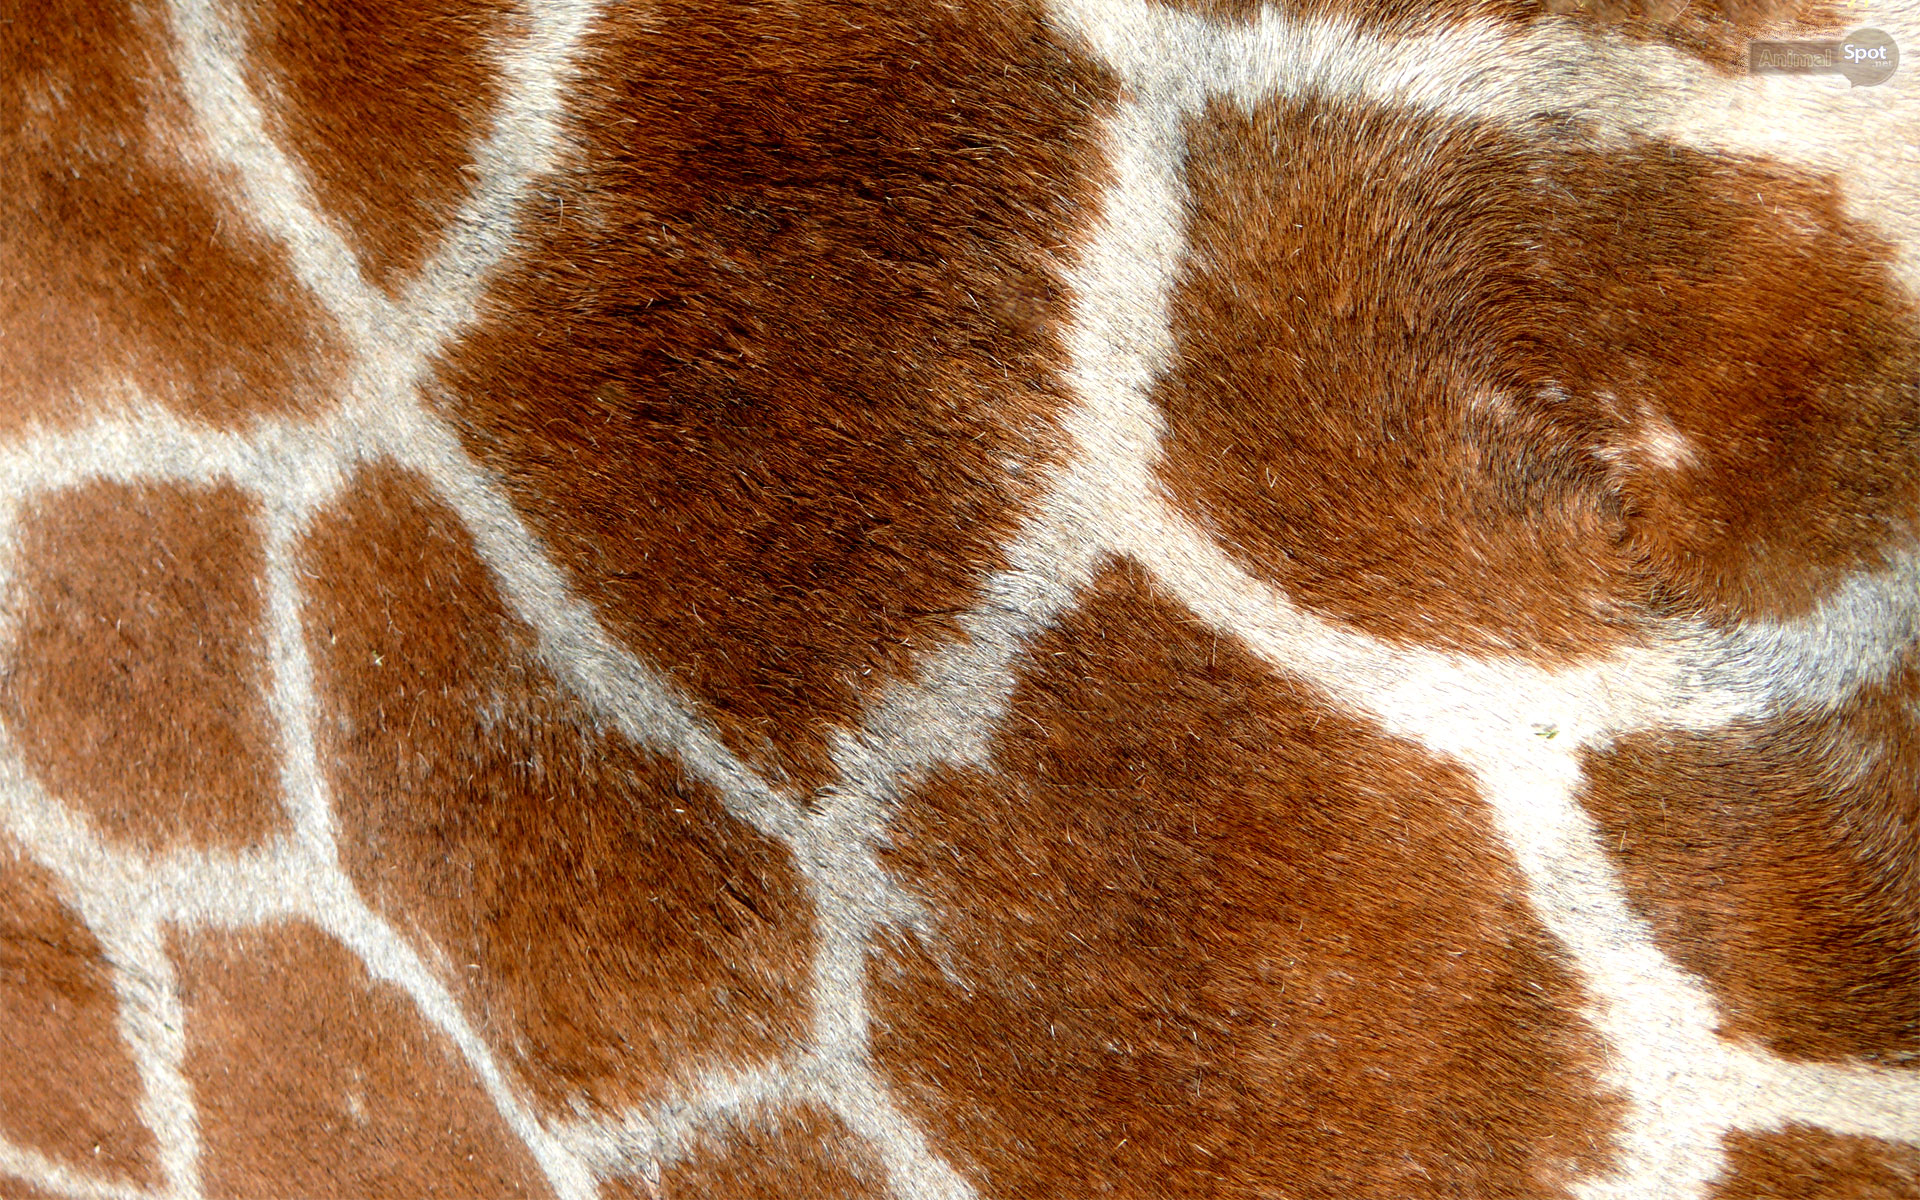 Giraffe Wallpapers Animal Spot